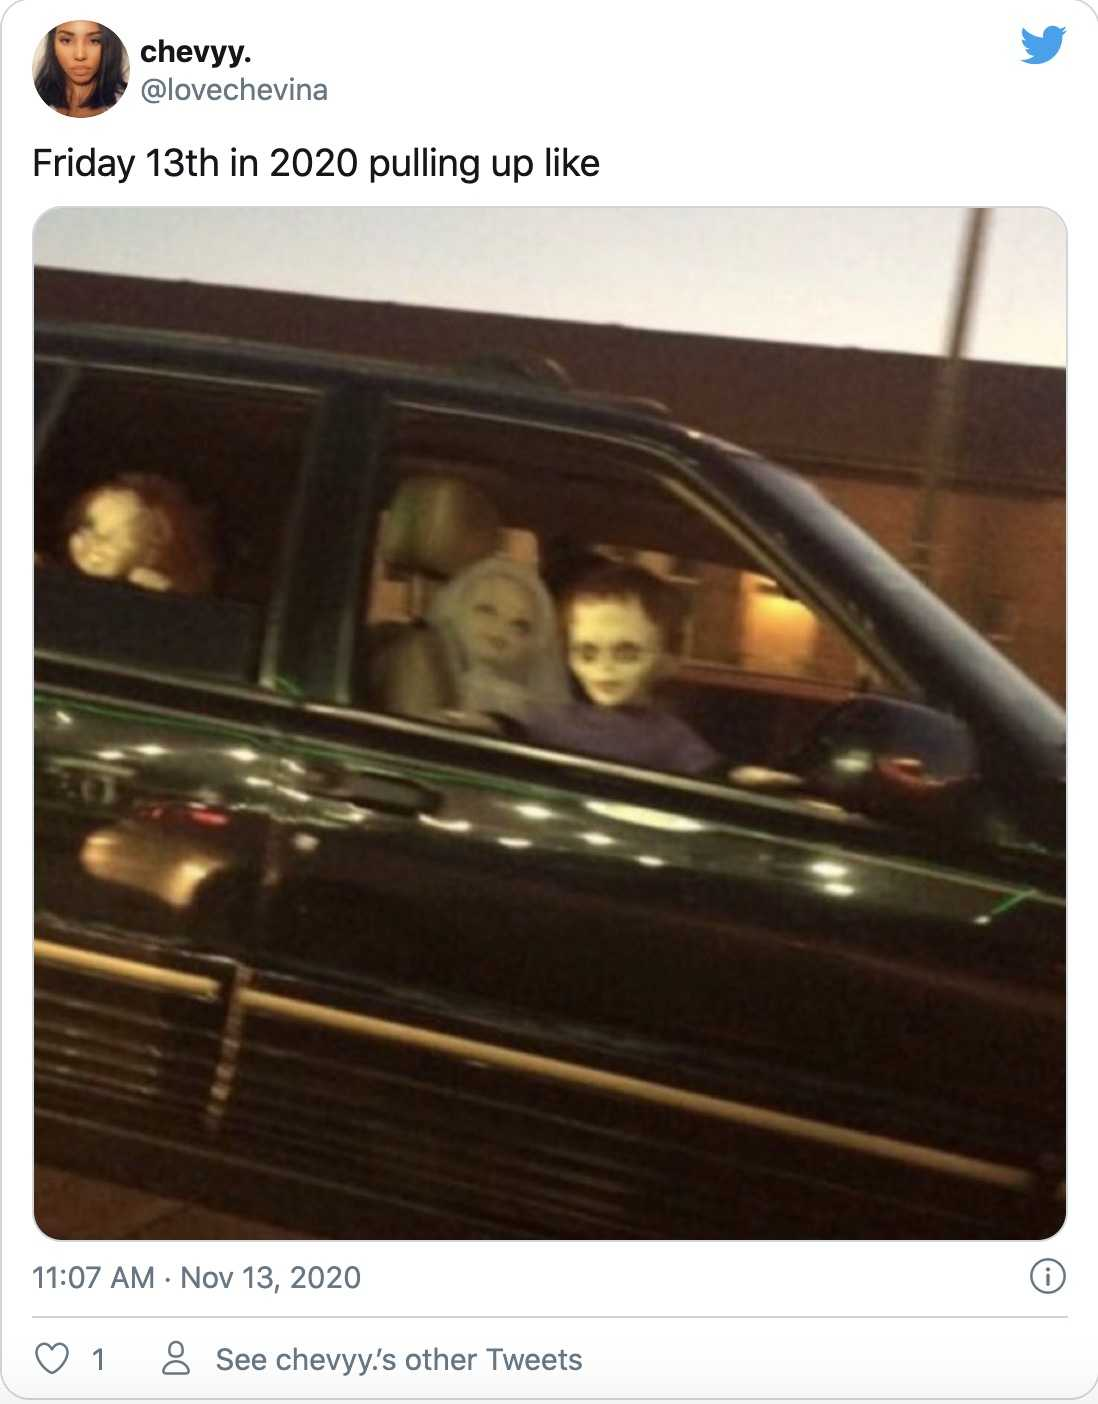 2020 friday the 13th memes funny - just cruising